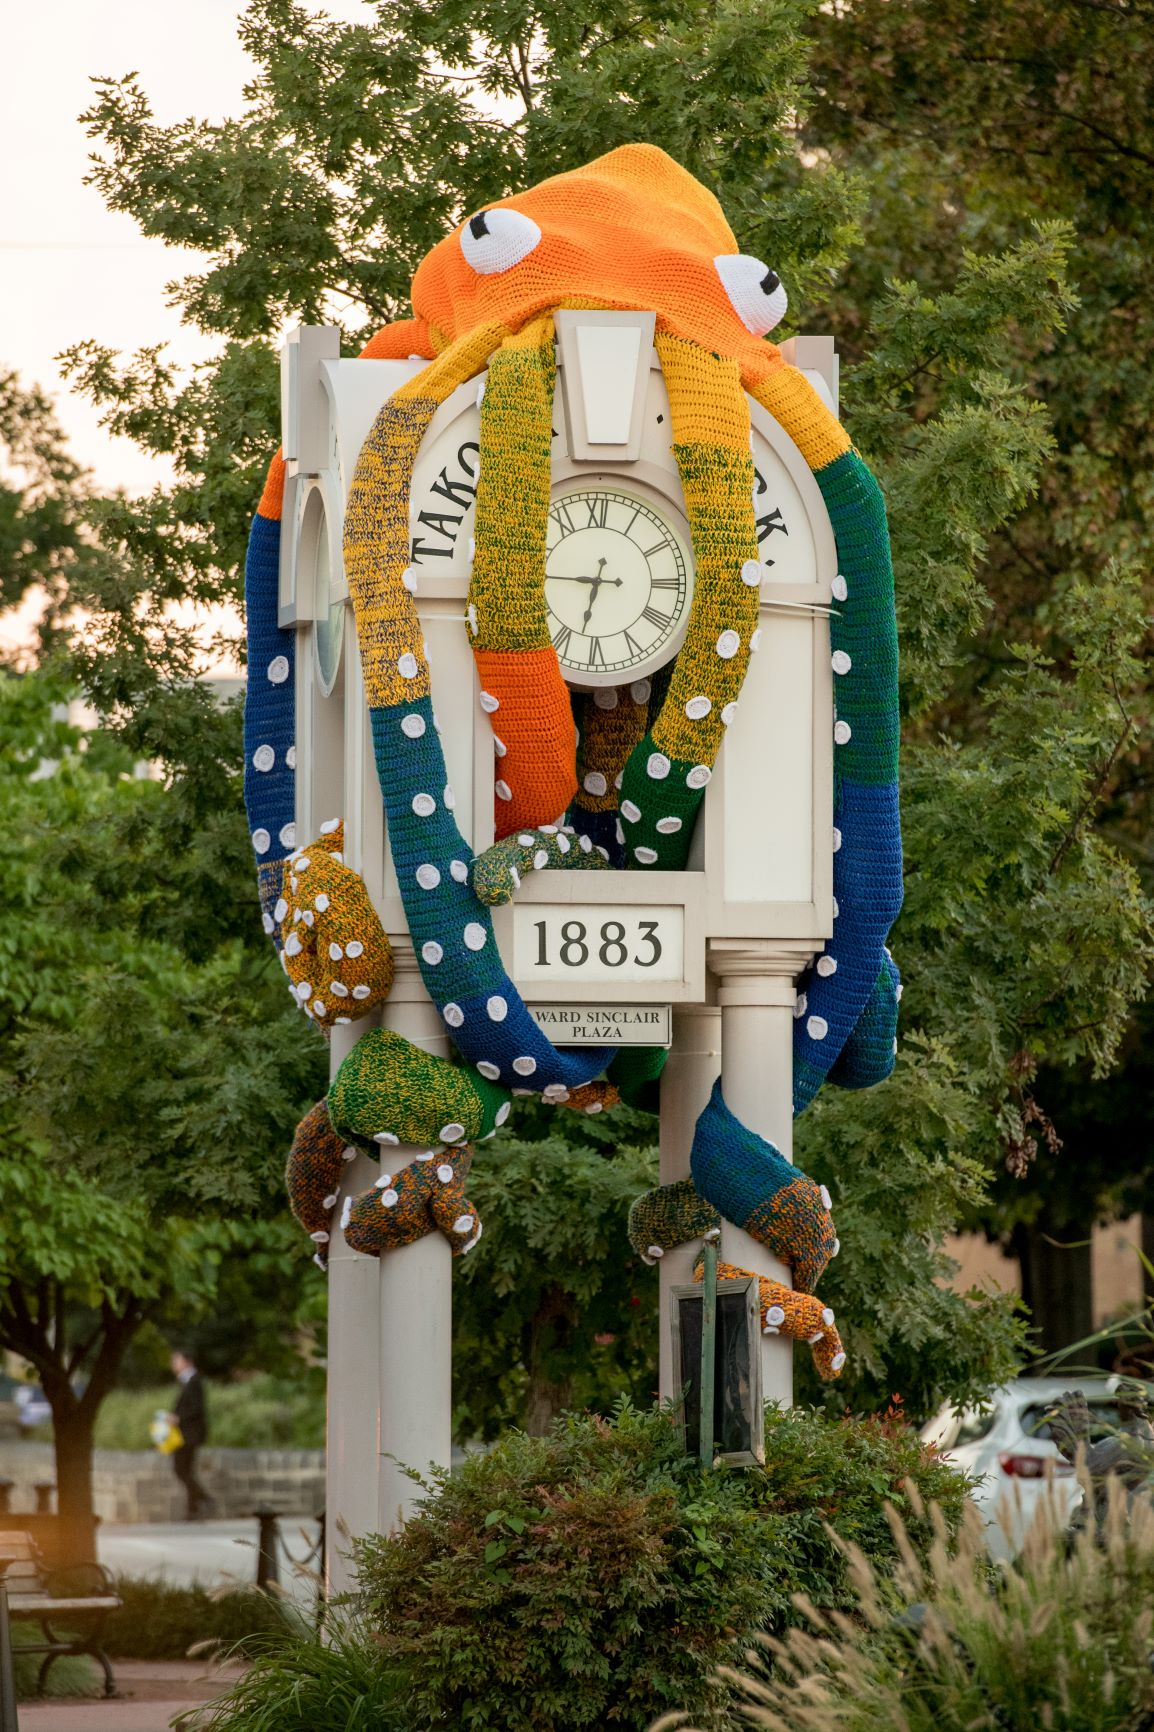 """City Announces Removal of """"Clocktopus,"""" Declares Offensive"""